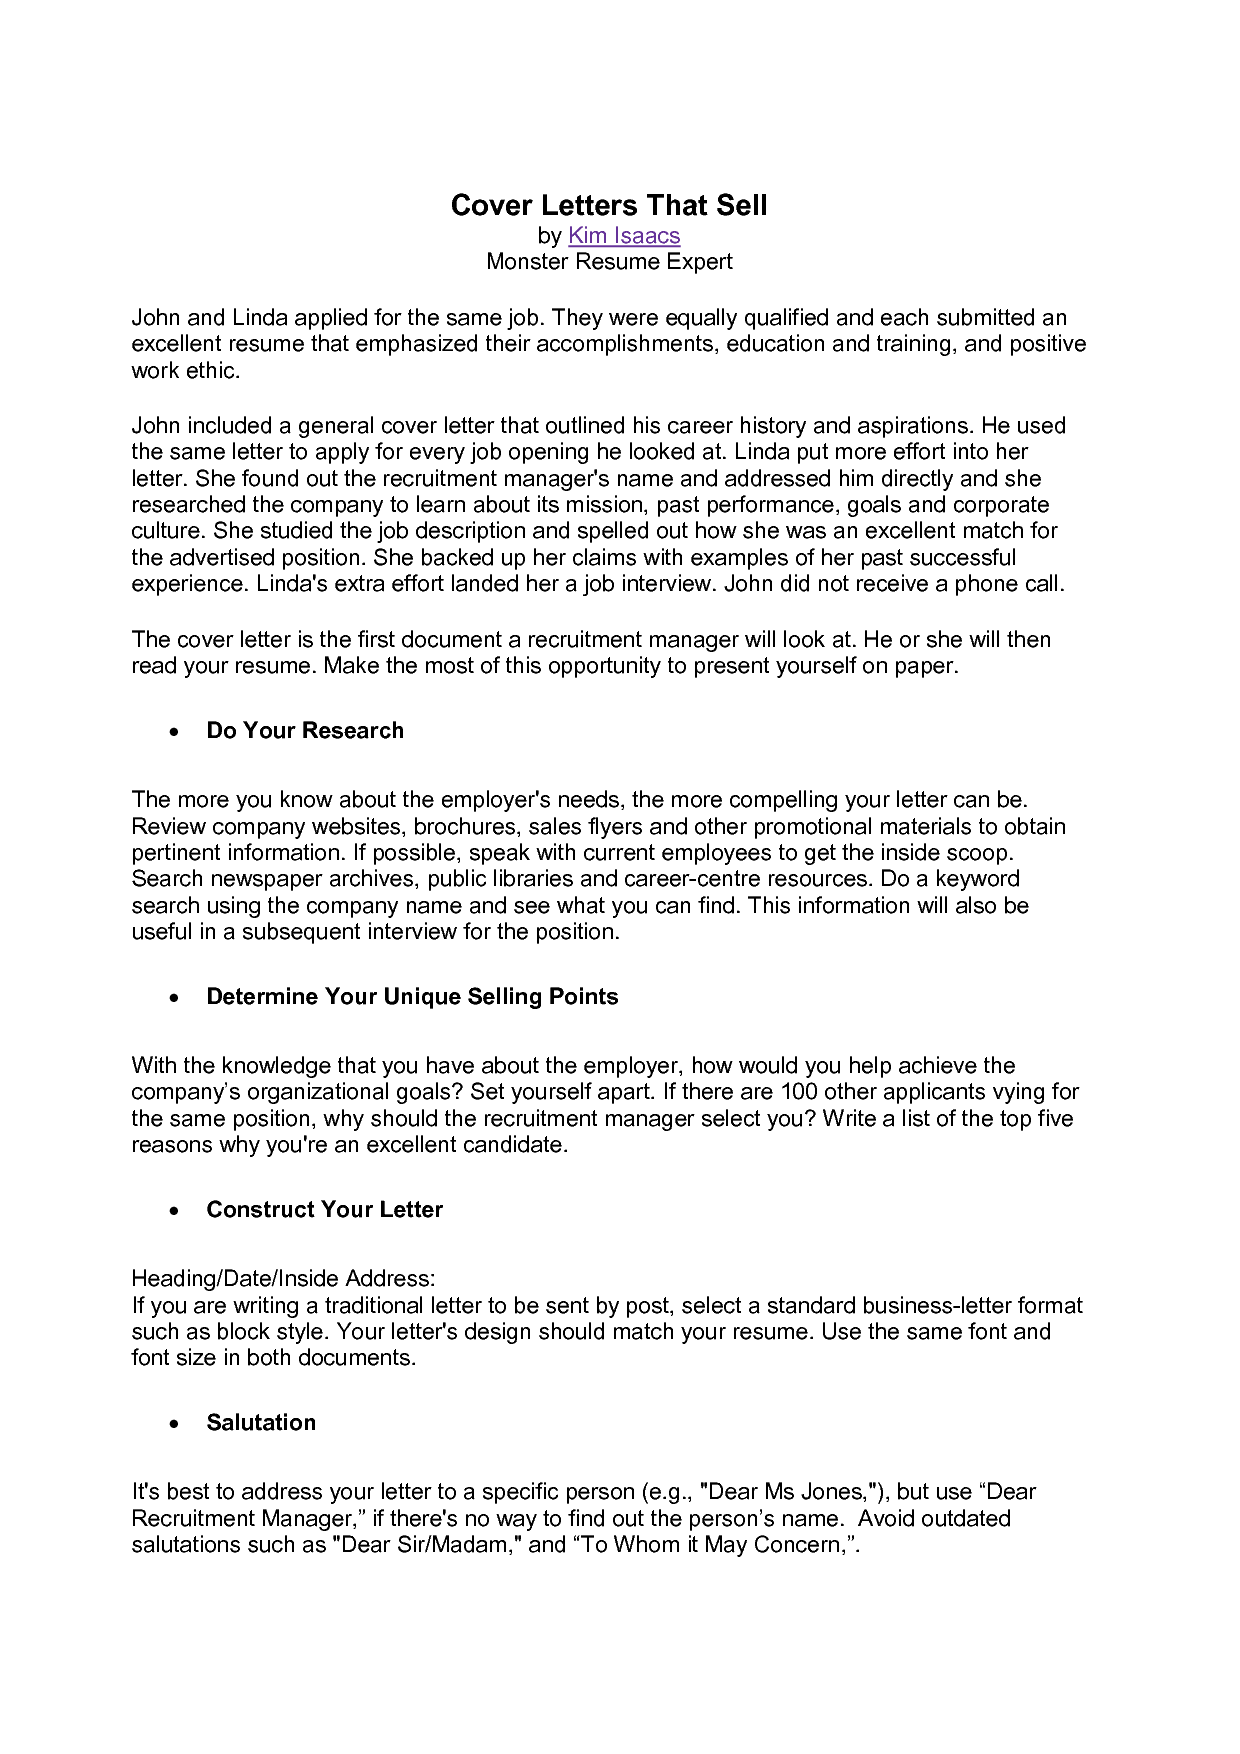 monster cover letter monster cover letter monster monster cover letter monster cover letter monster cover letter template monster cover